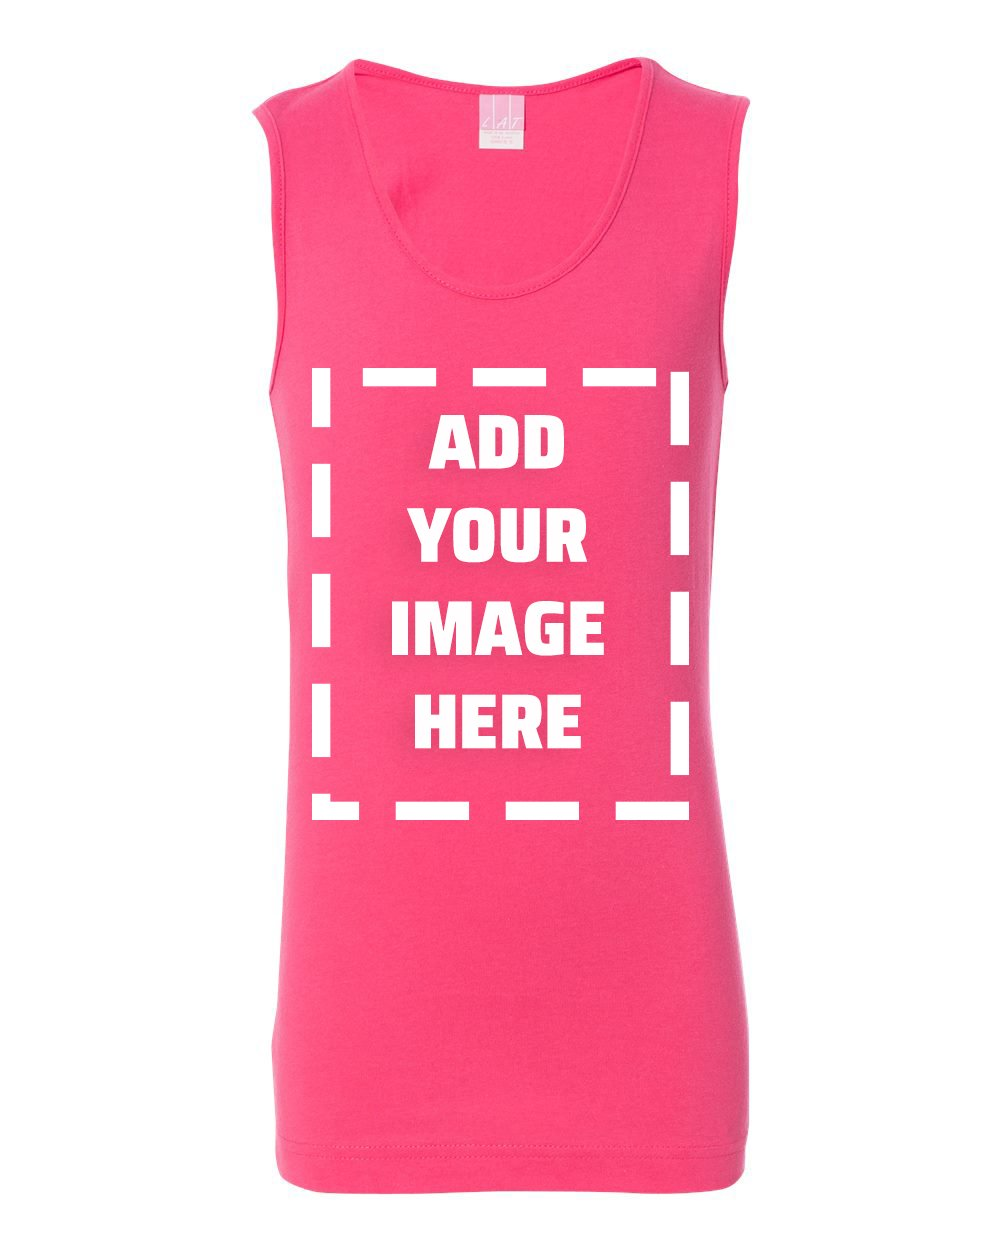 Marky G Apparel Personalize Add Your Own Image Fine Jersey Tank